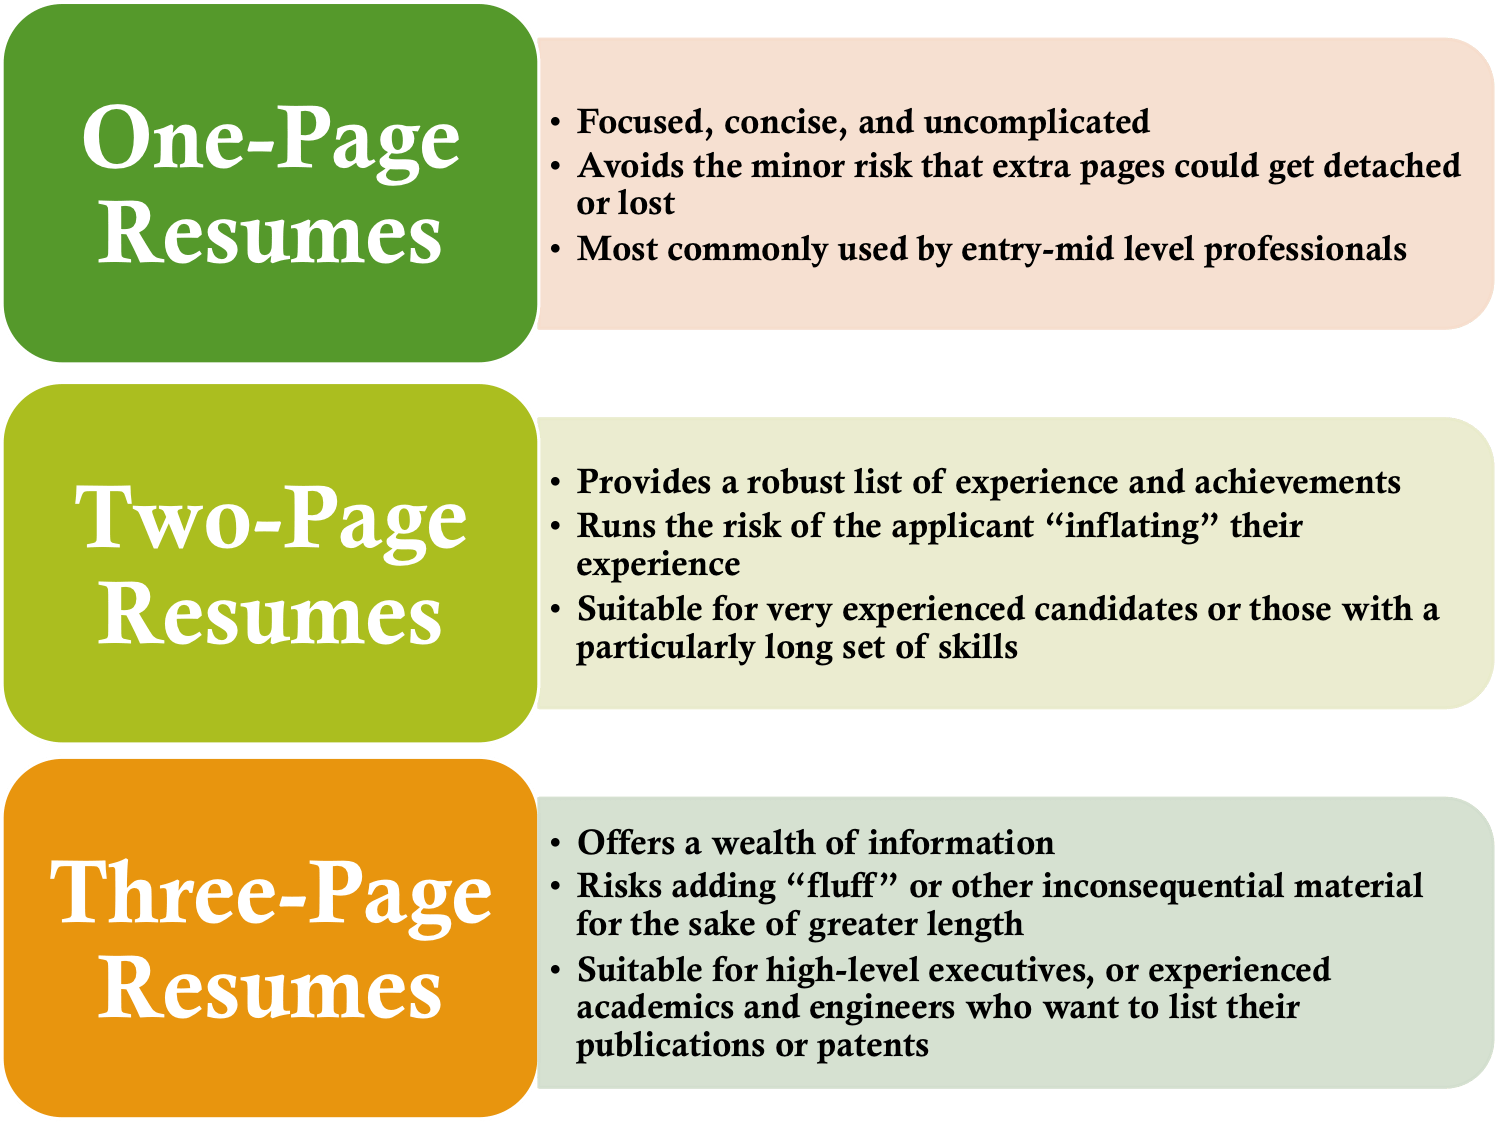 mba resume guidelines clear admit mba news admissions advice trends tag resume guidelines resume ideas resume